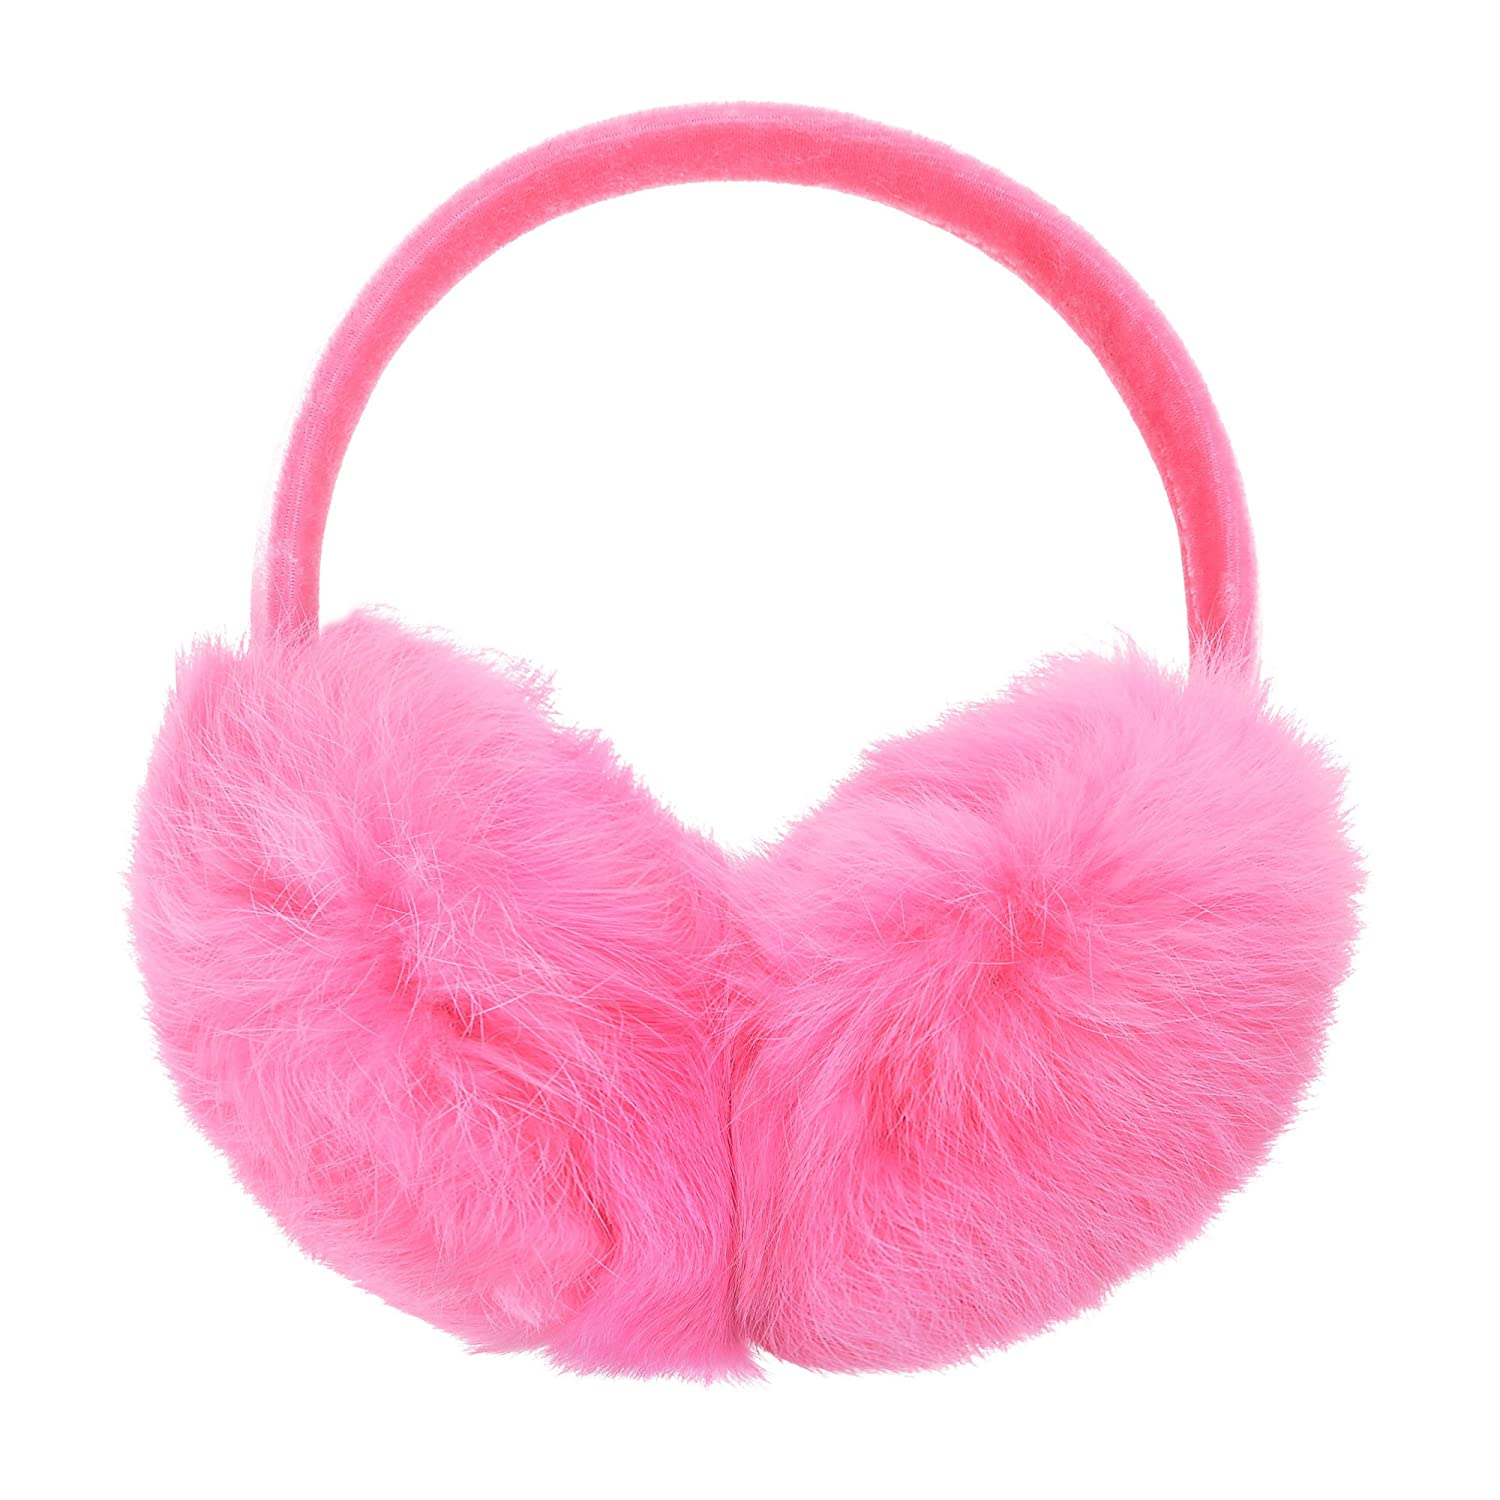 ZLYC Womens Girls Genuine Rabbit Fur EarMuffs Adjustable Ear Warmers, White ZYJ-ET-001-WT